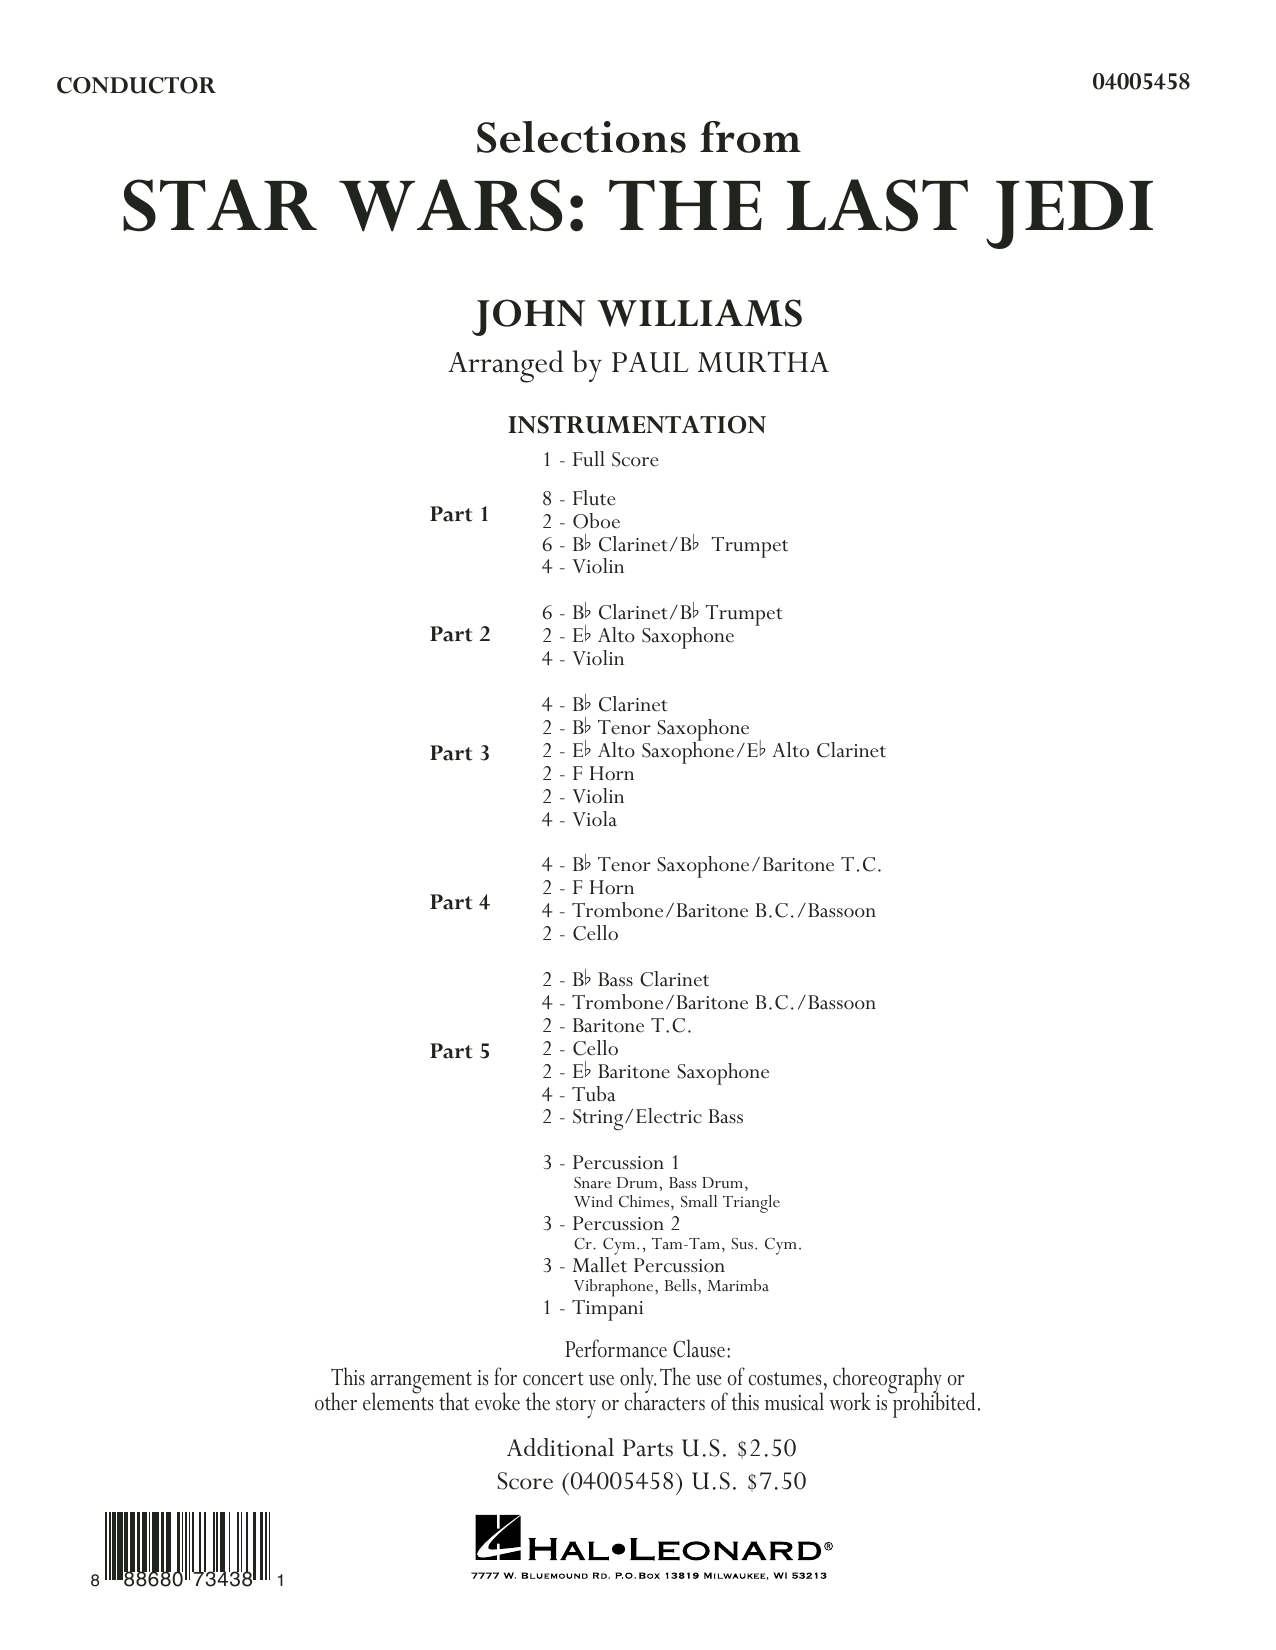 Paul Murtha Selections from Star Wars: The Last Jedi - Conductor Score (Full Score) sheet music notes and chords. Download Printable PDF.